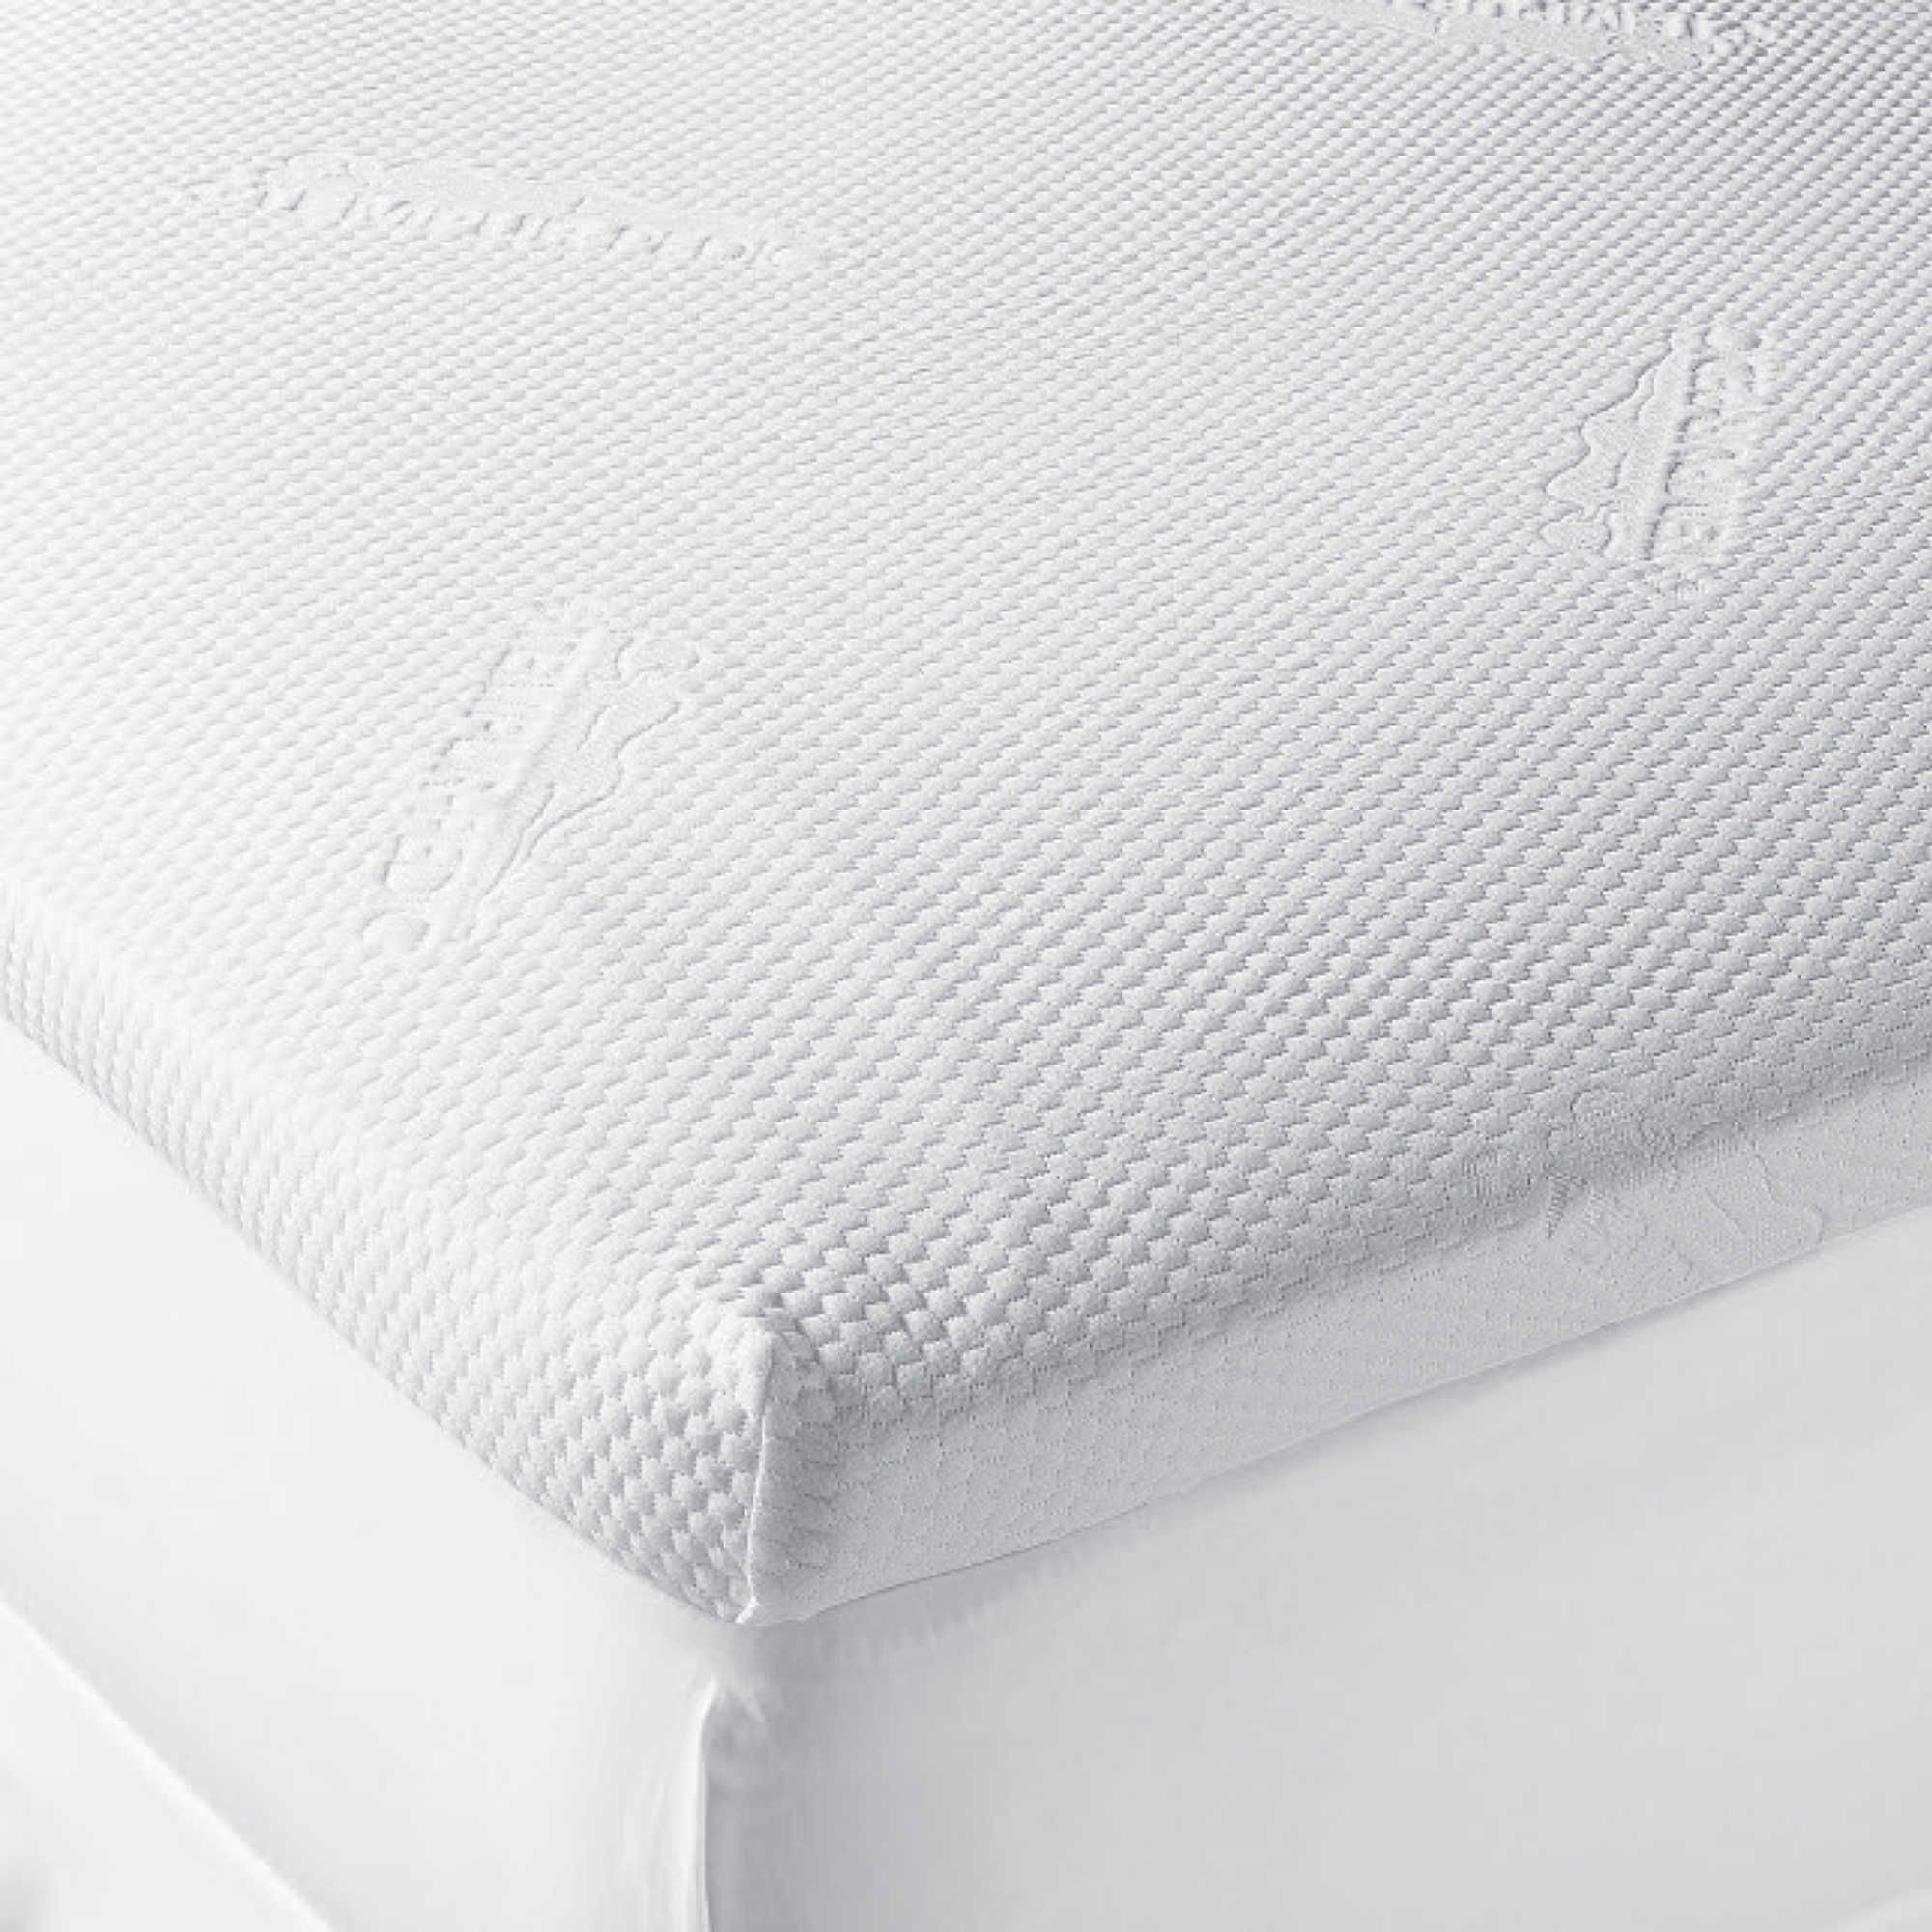 ip advanced by walmart performance sizes tempur inch protector pedic com mattress multiple topper